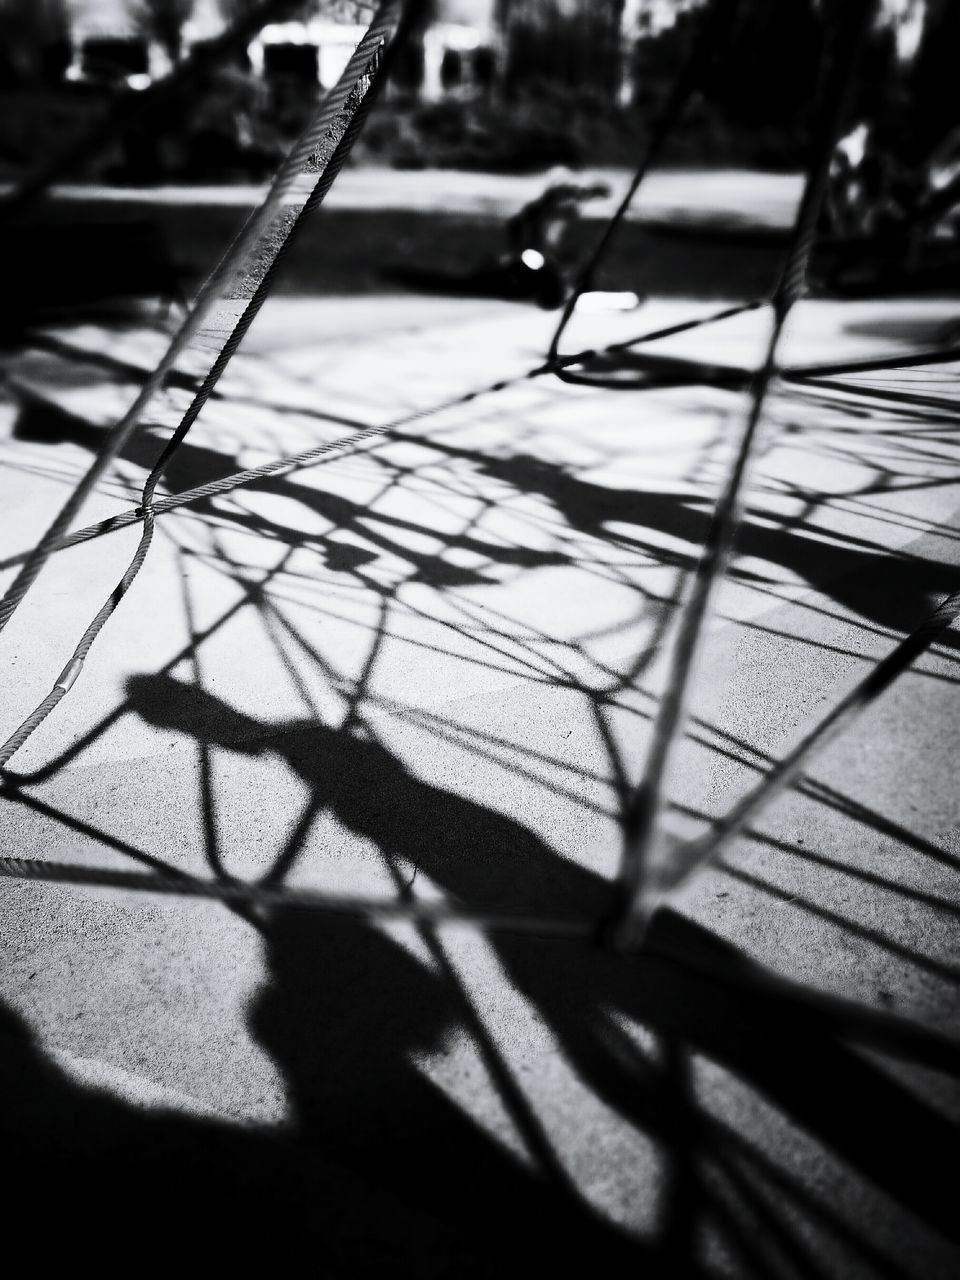 shadow, sunlight, selective focus, day, outdoors, real people, close-up, nature